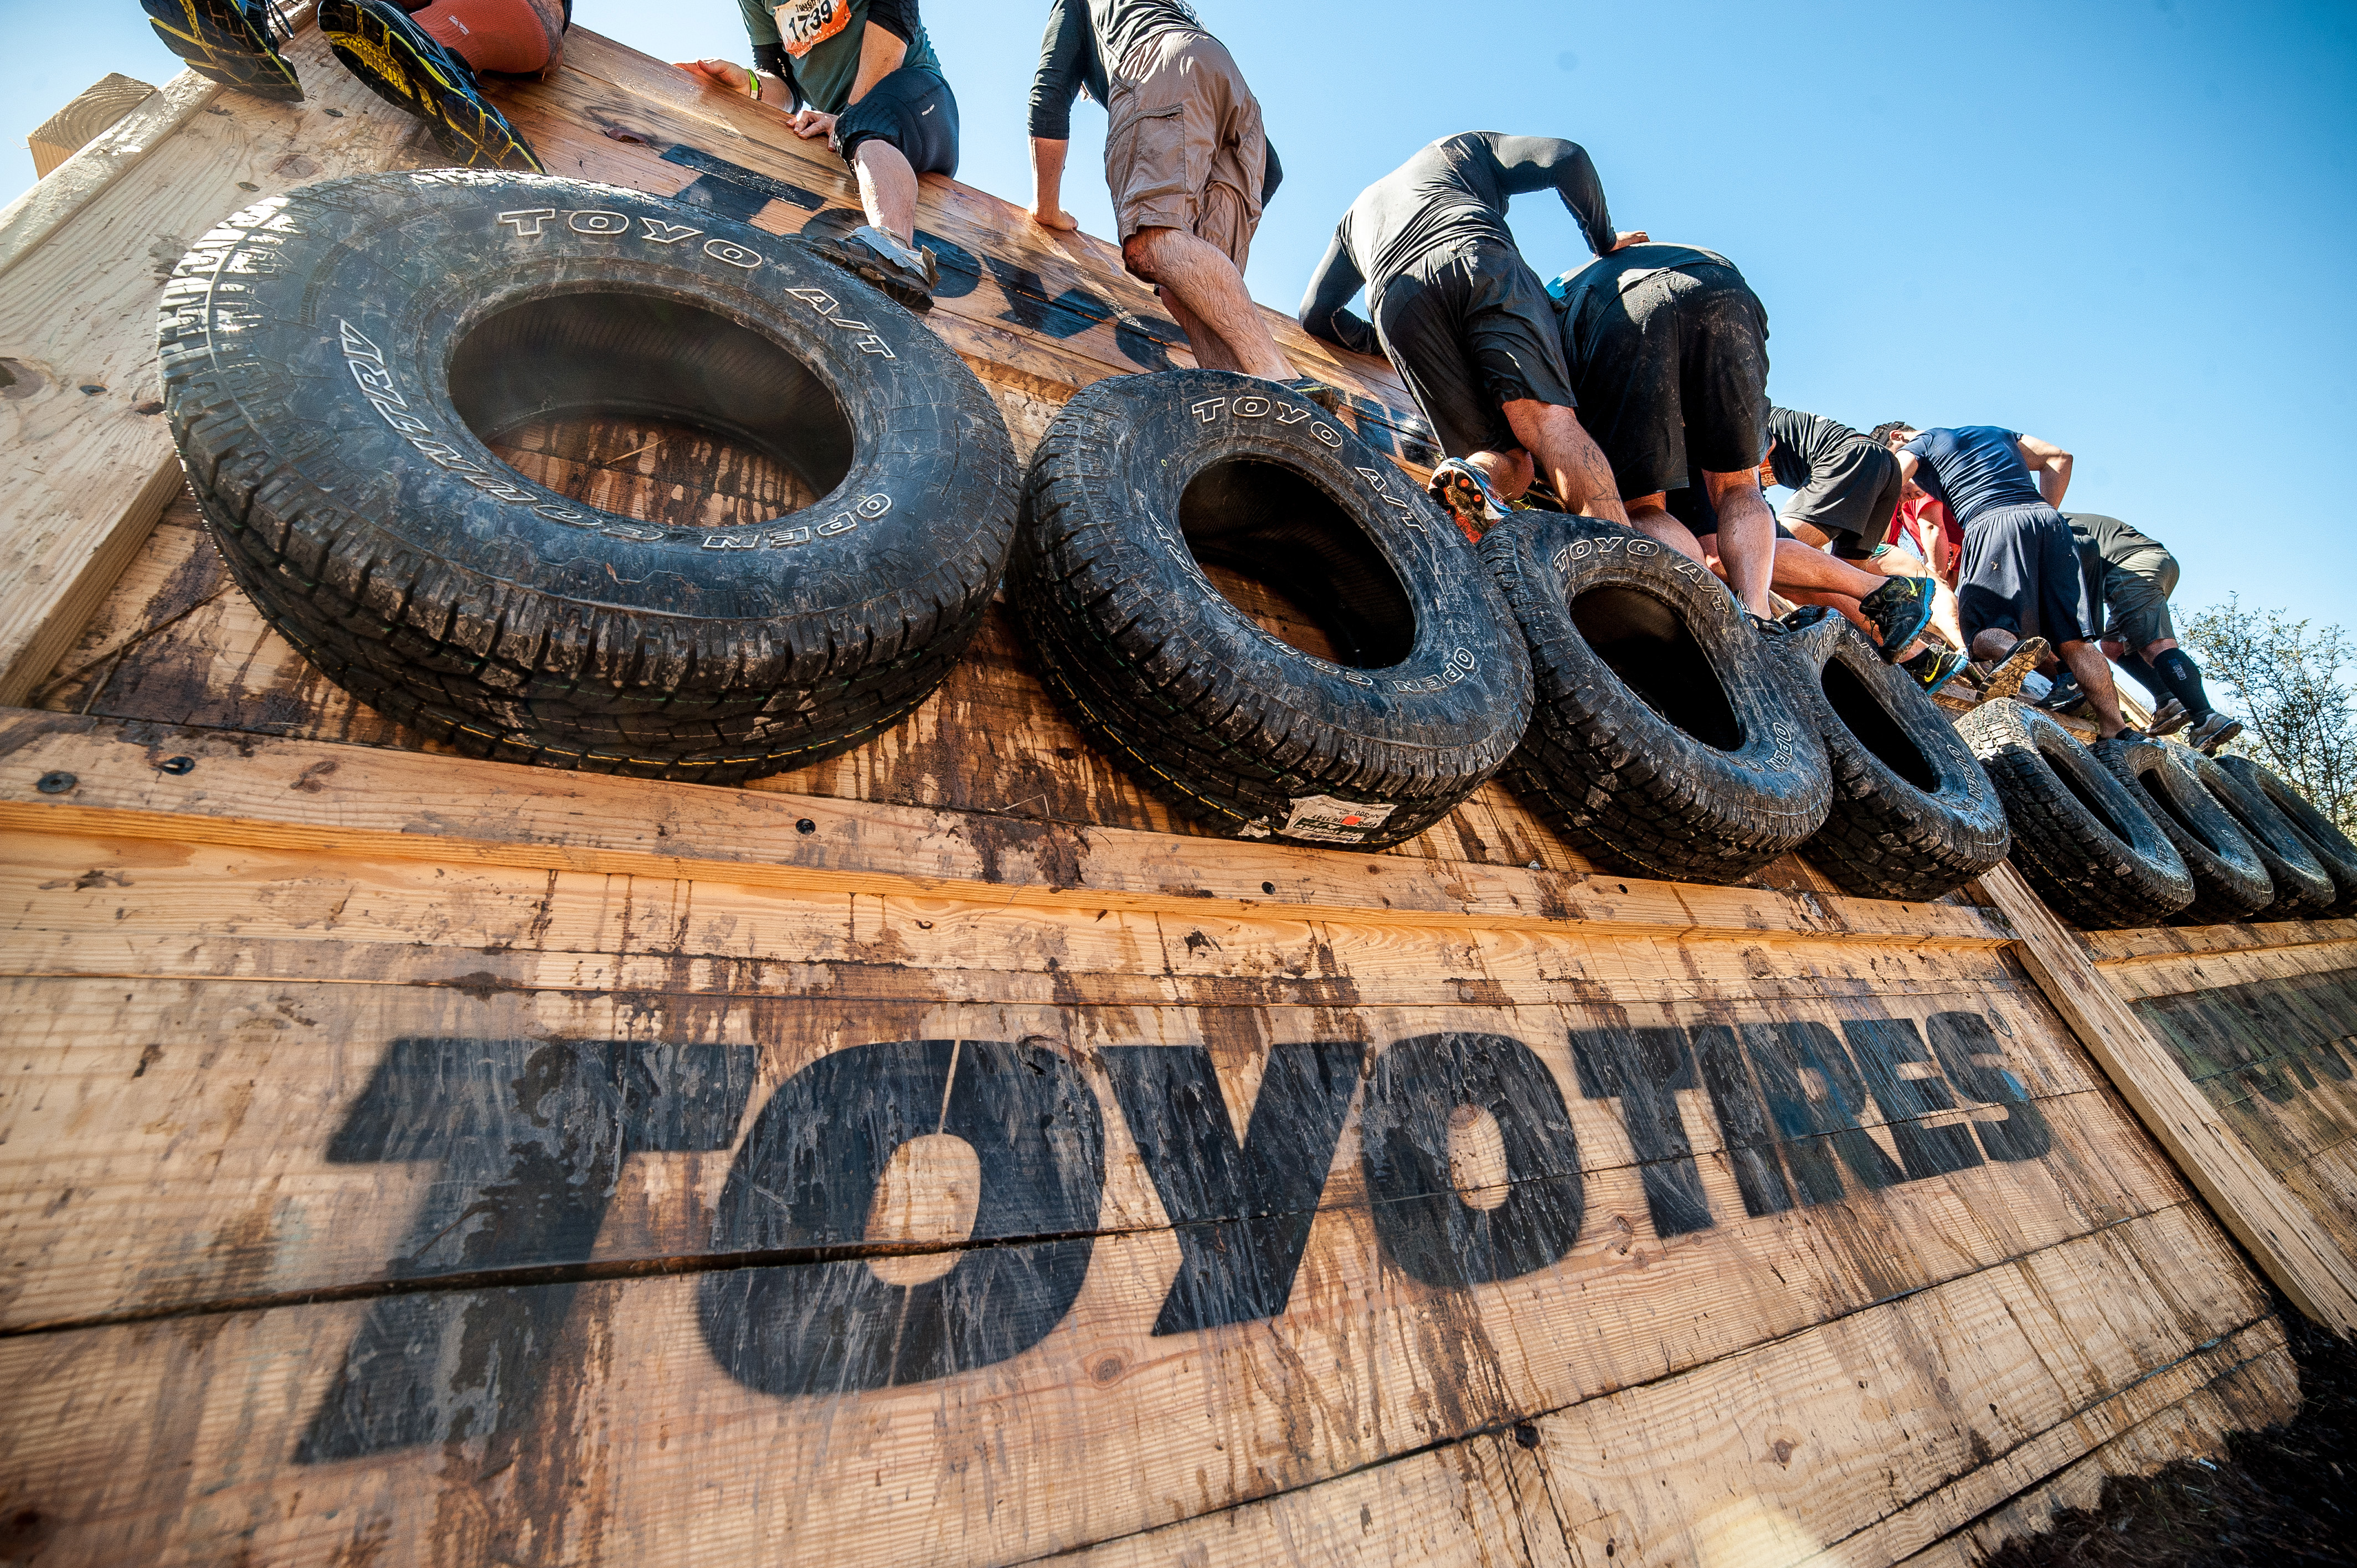 Toyo is named the official tire of Tough Mudder